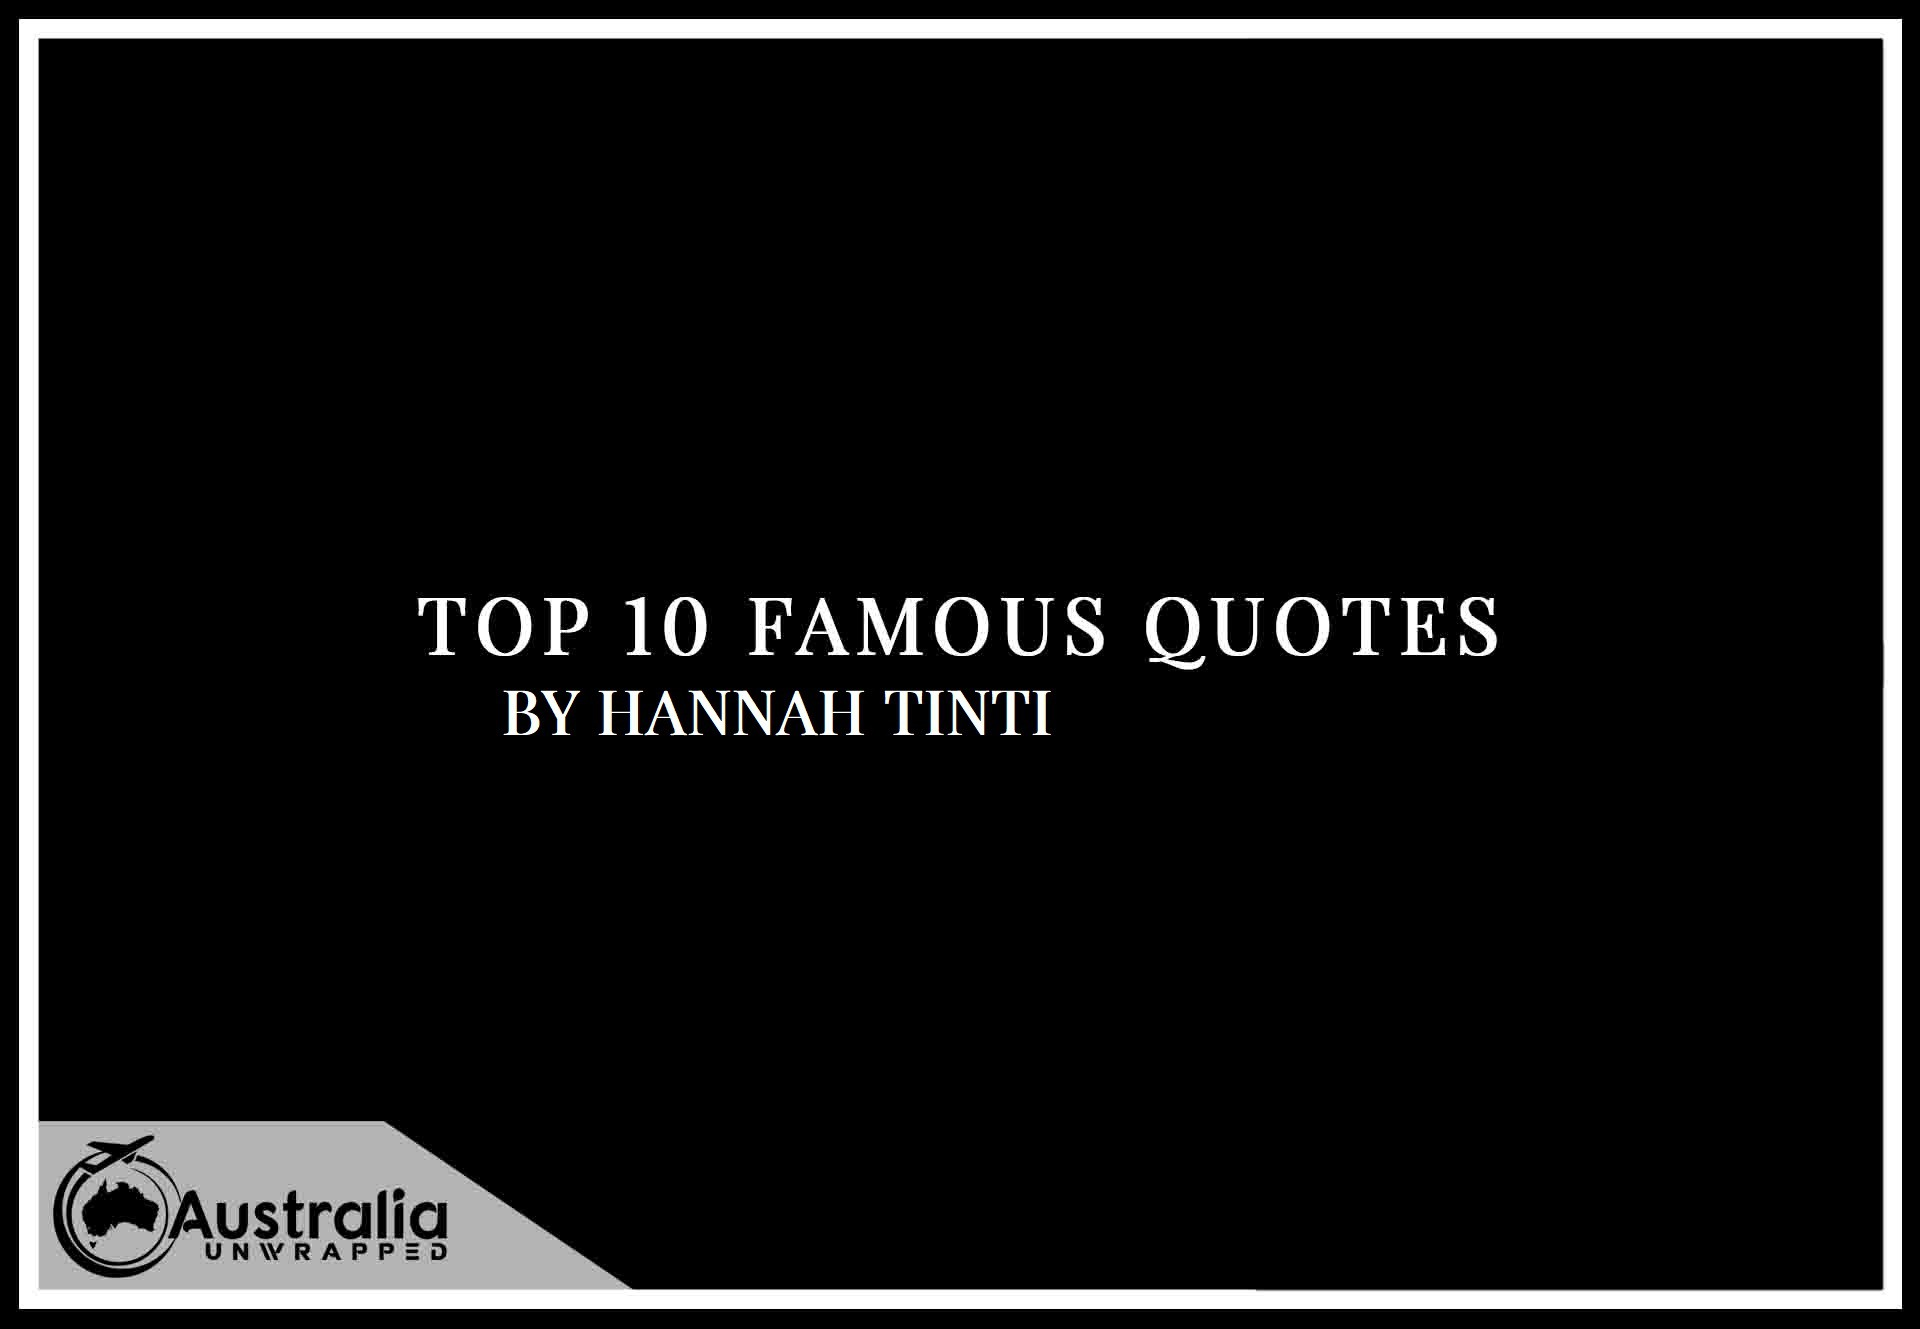 Top 10 Famous Quotes by Author Hannah Tinti